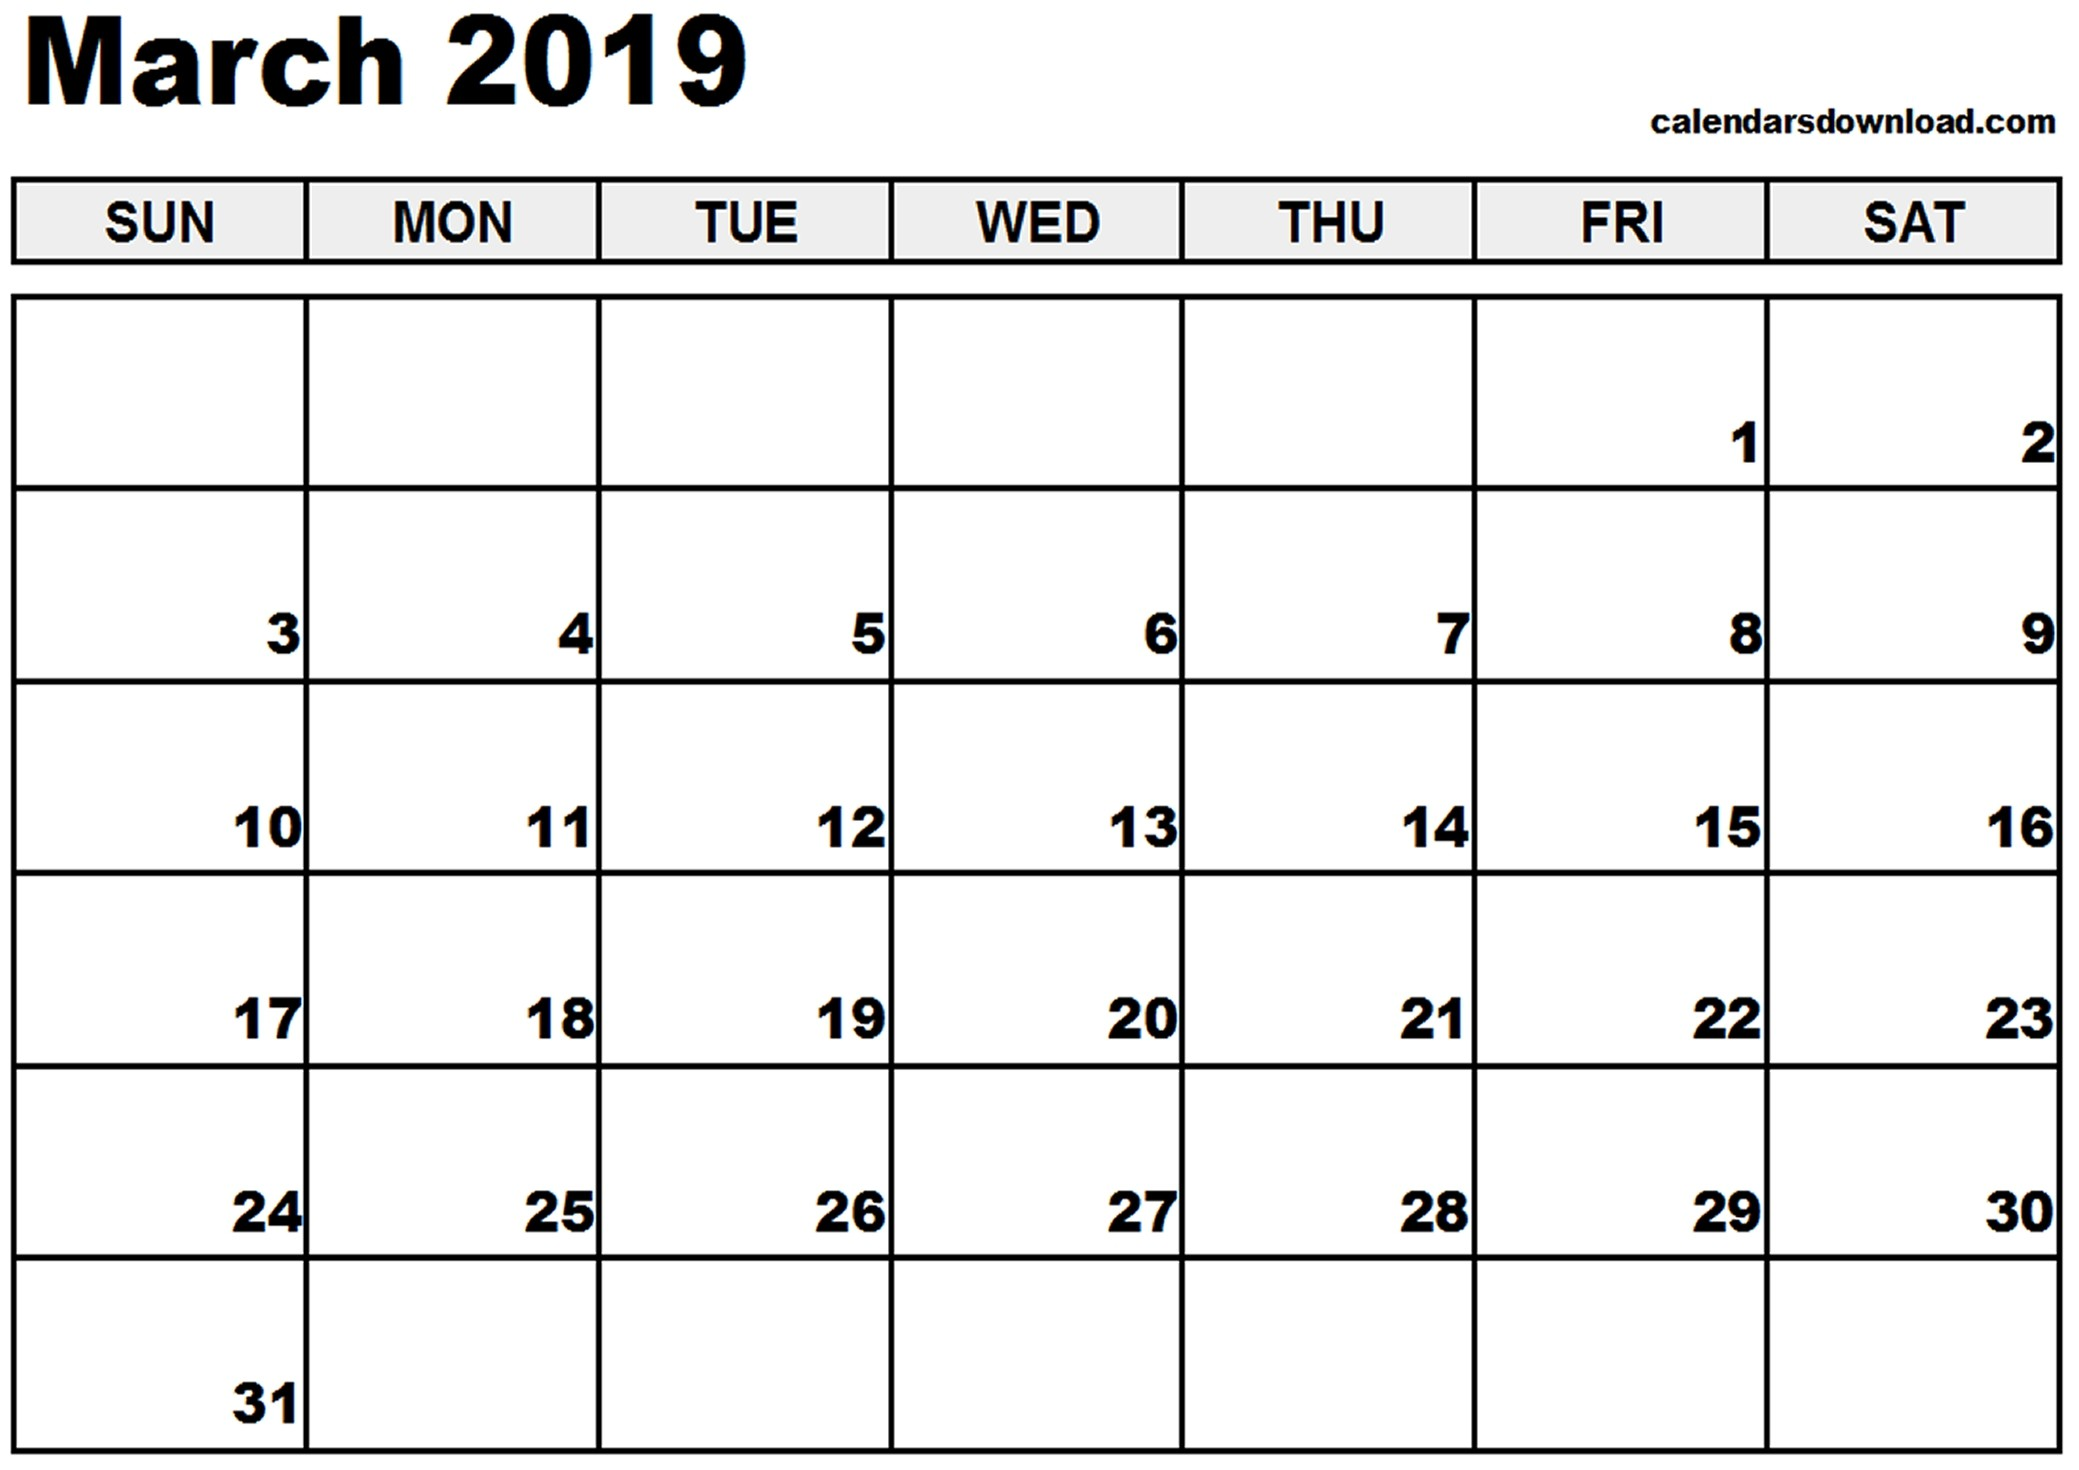 March Calendar 2019 Más Populares March 2019 Calendar Pdf Word Excel Of March Calendar 2019 Más Populares February March Calendar 2019 2018 Printable Calendar Store